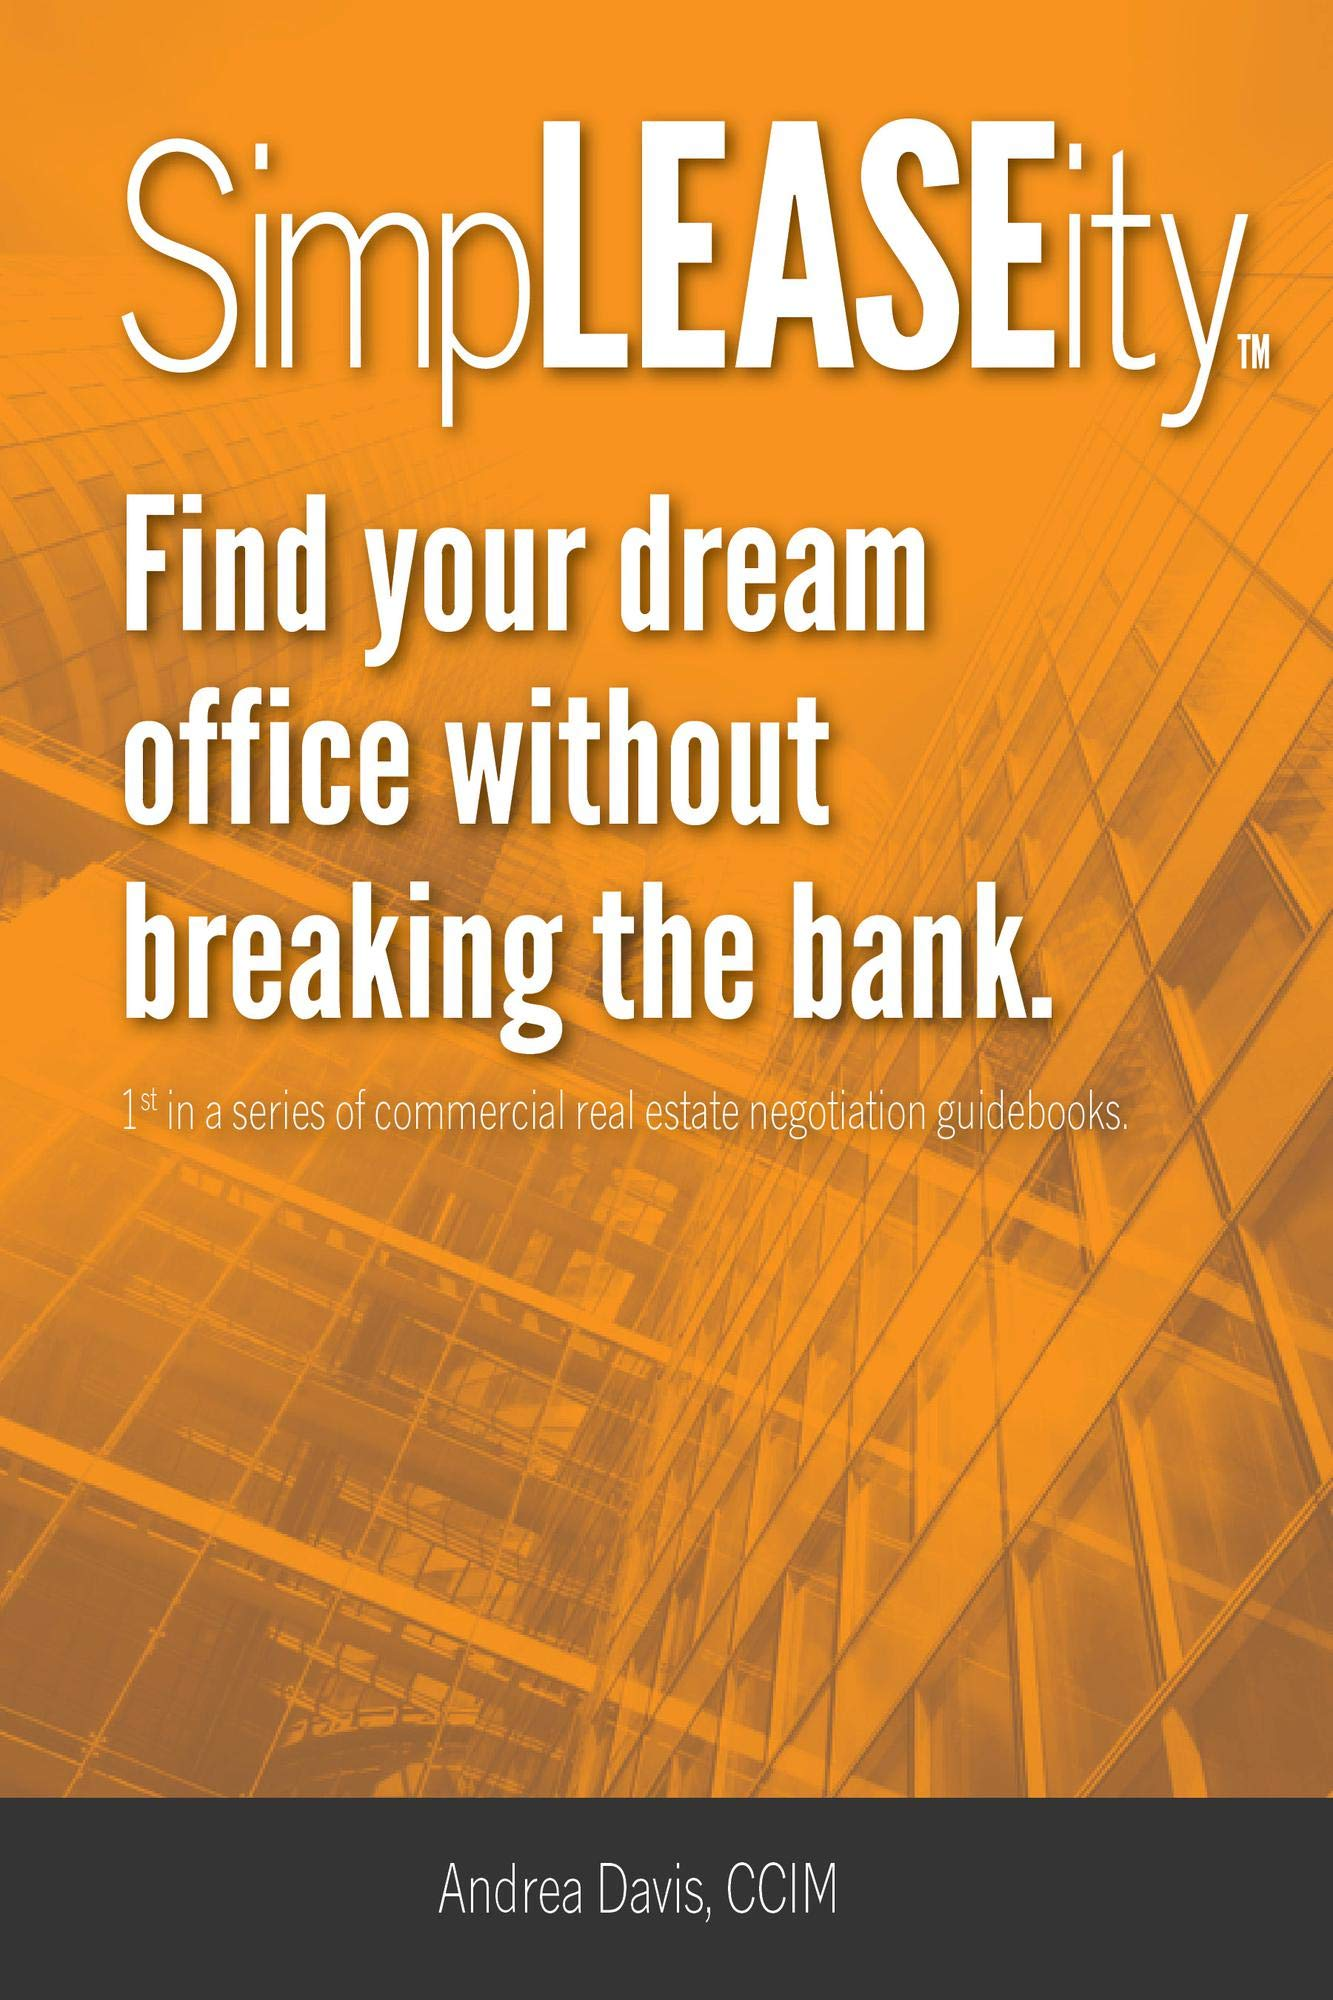 SimpLEASEity™: Business owner's guide to winning the game of commercial real estate leasing